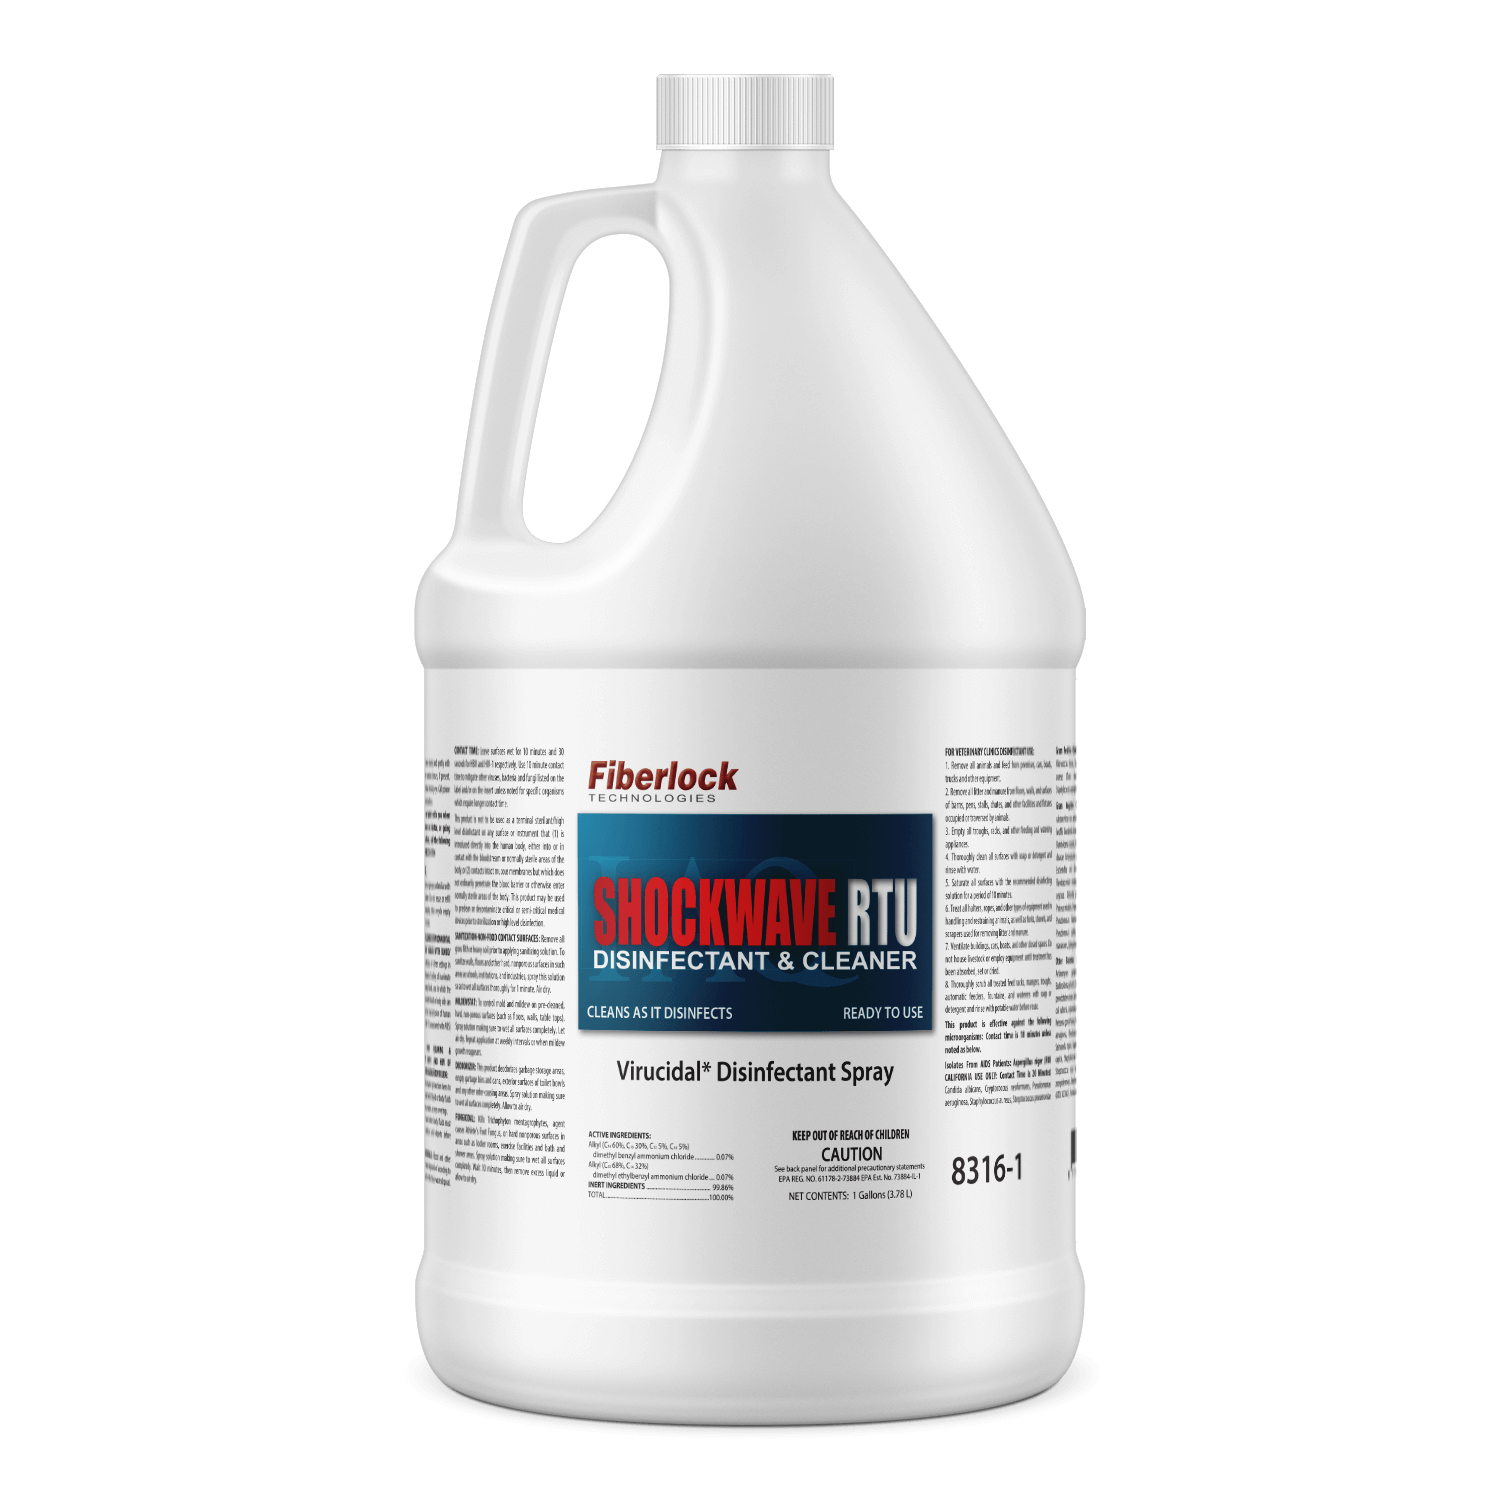 covid-19 cleaner